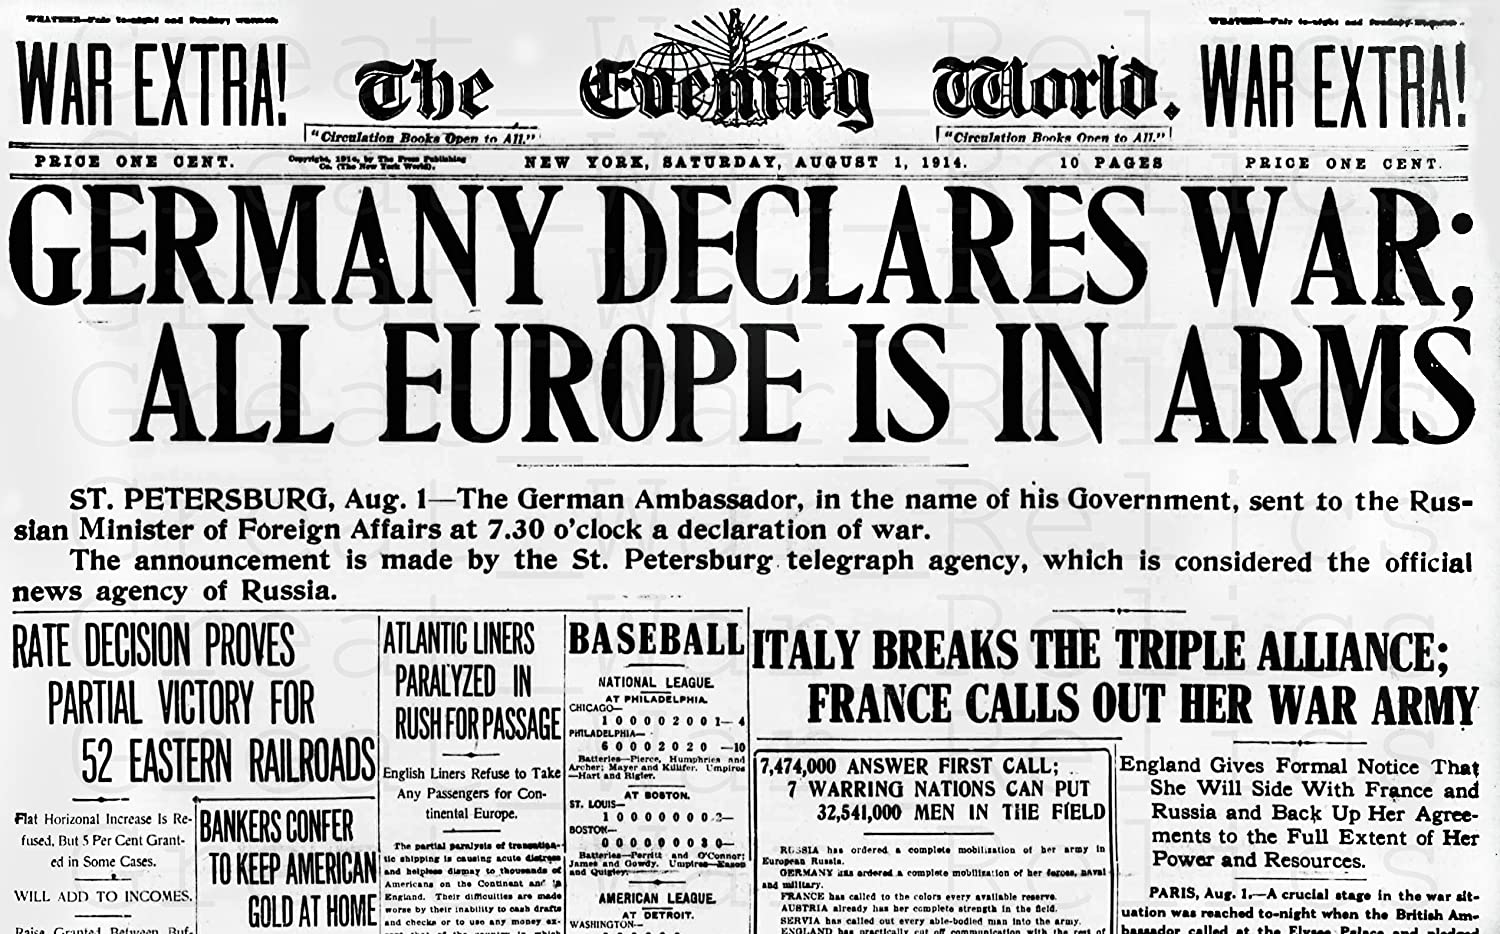 Amazon.com: WW1 Newspaper Poster Replica - GERMANY DECLARES ALL EUROPE IS IN ARMS - Size 8.3x11.7 inches - WWI 1914 Military Memorabilia Wall Decor: Posters & Prints